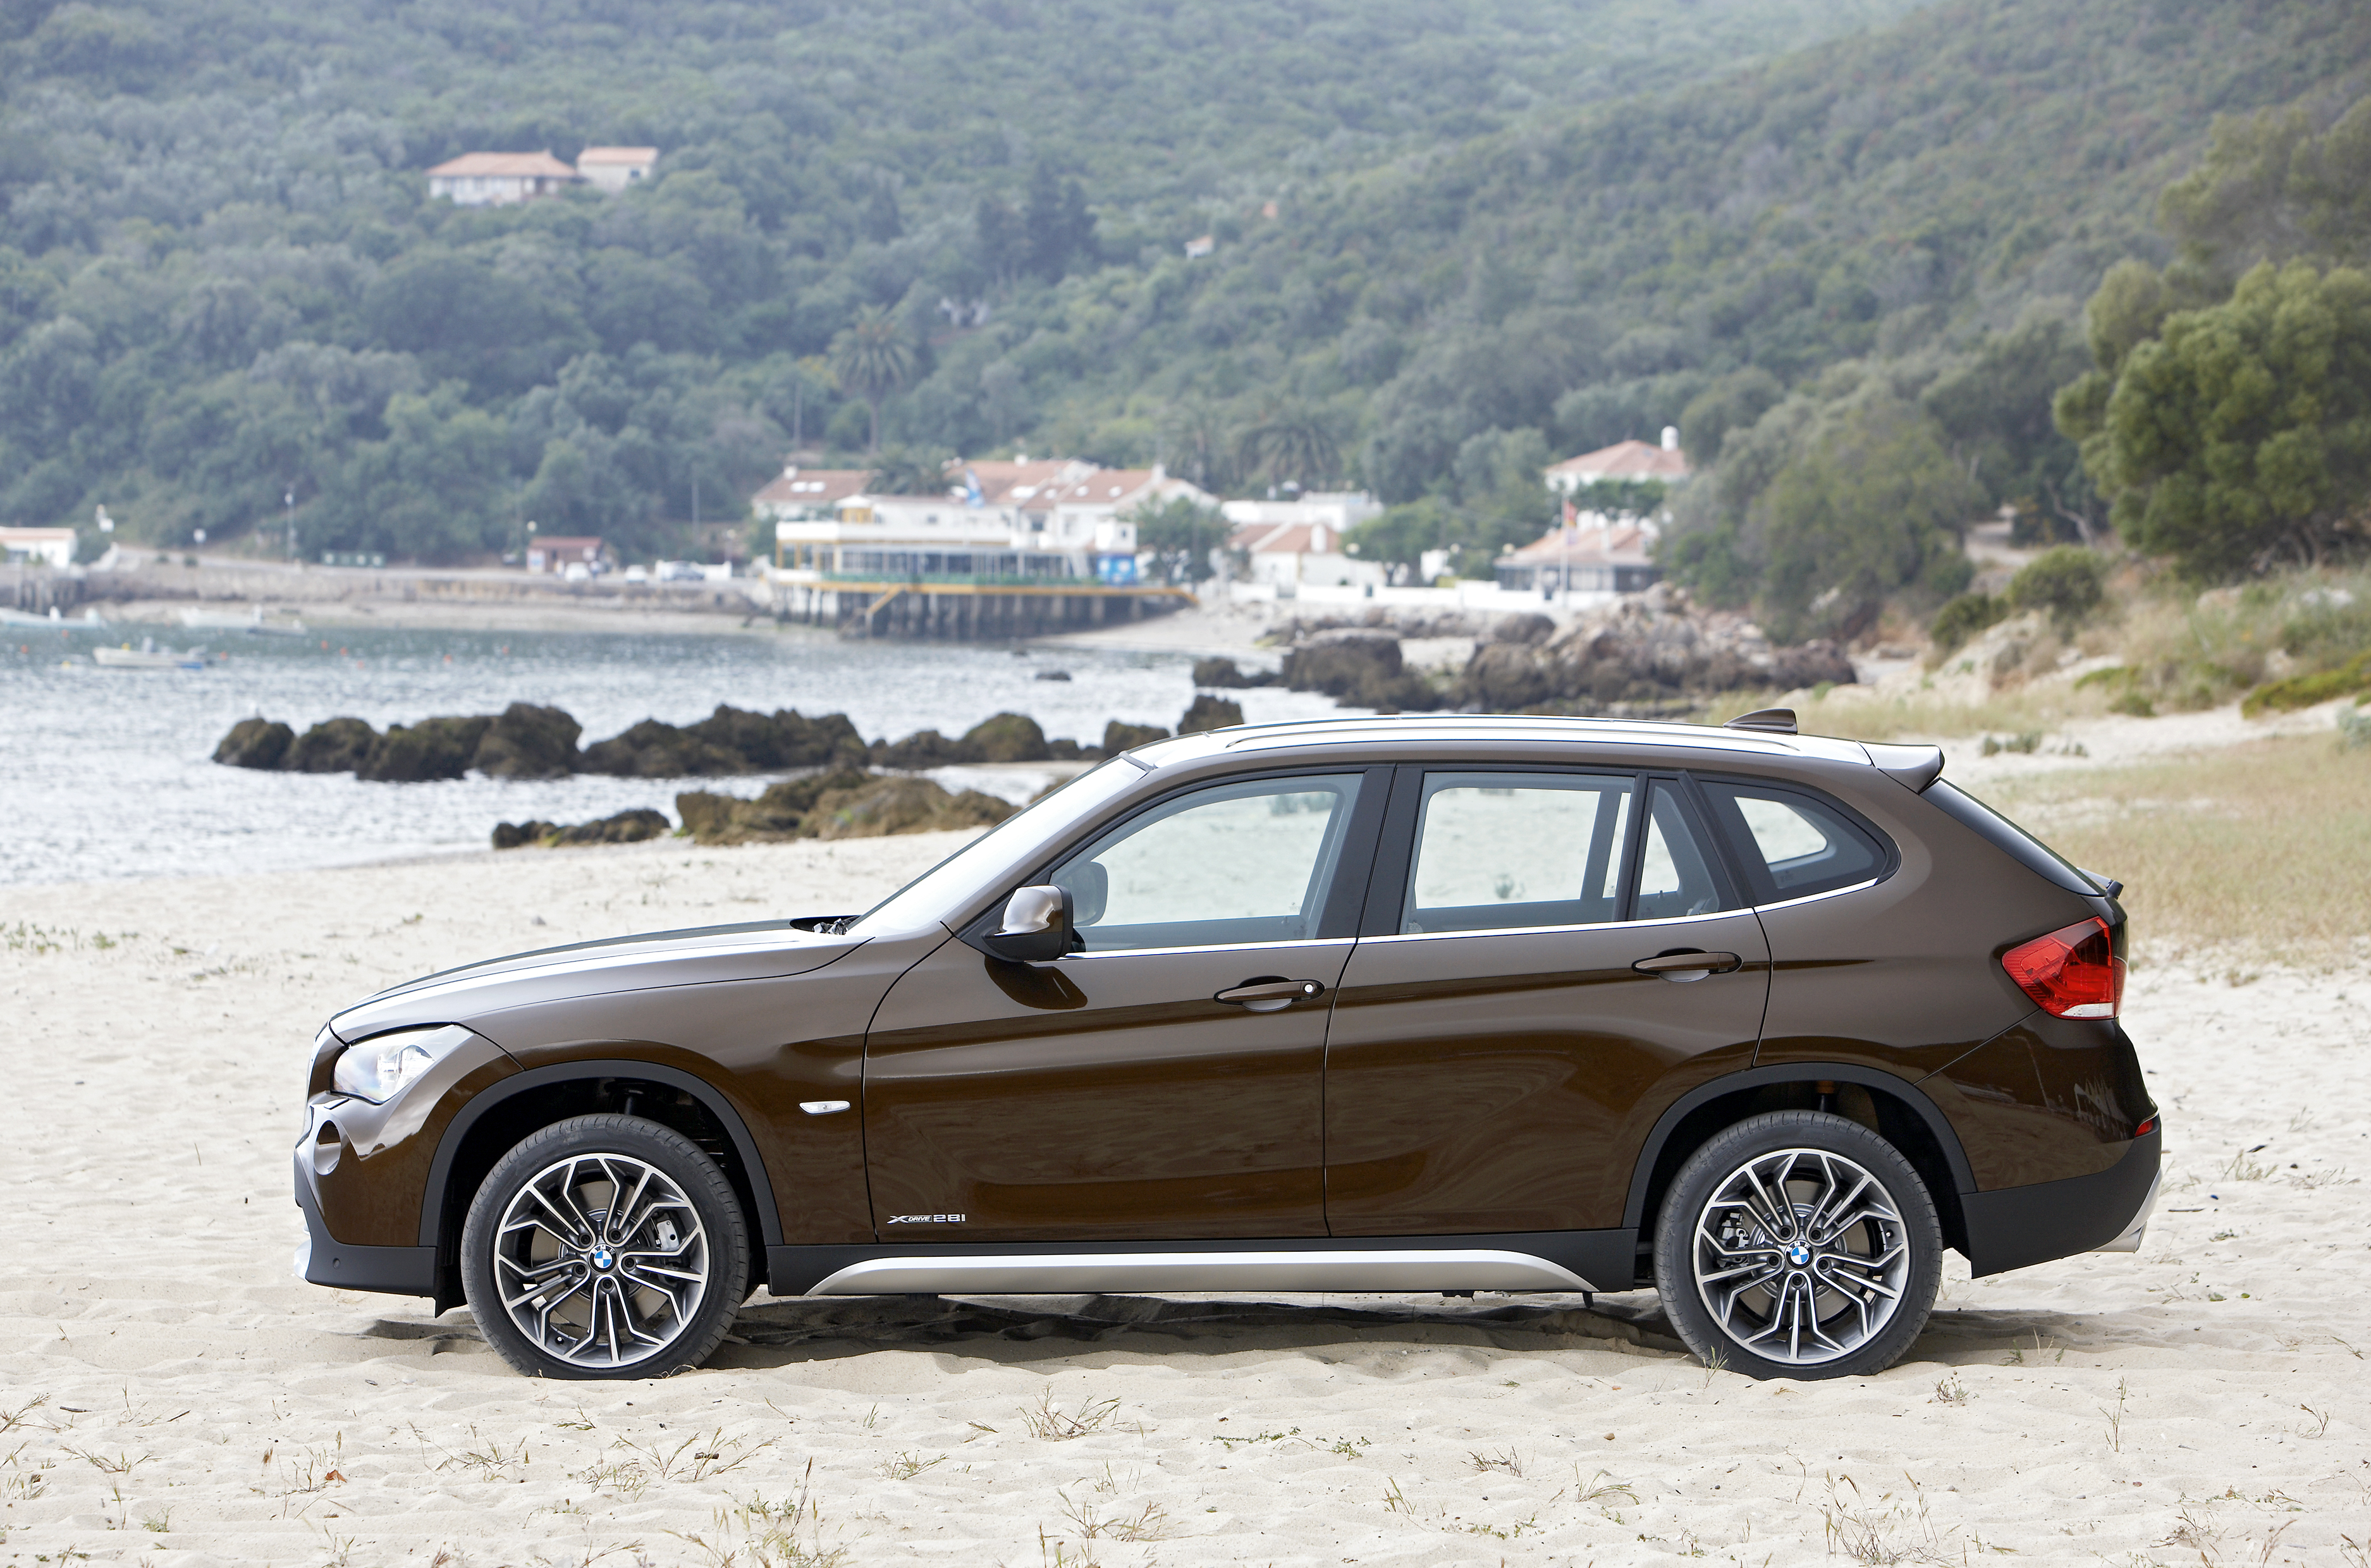 introducing the x series cadet bmw x1 exposed. Black Bedroom Furniture Sets. Home Design Ideas